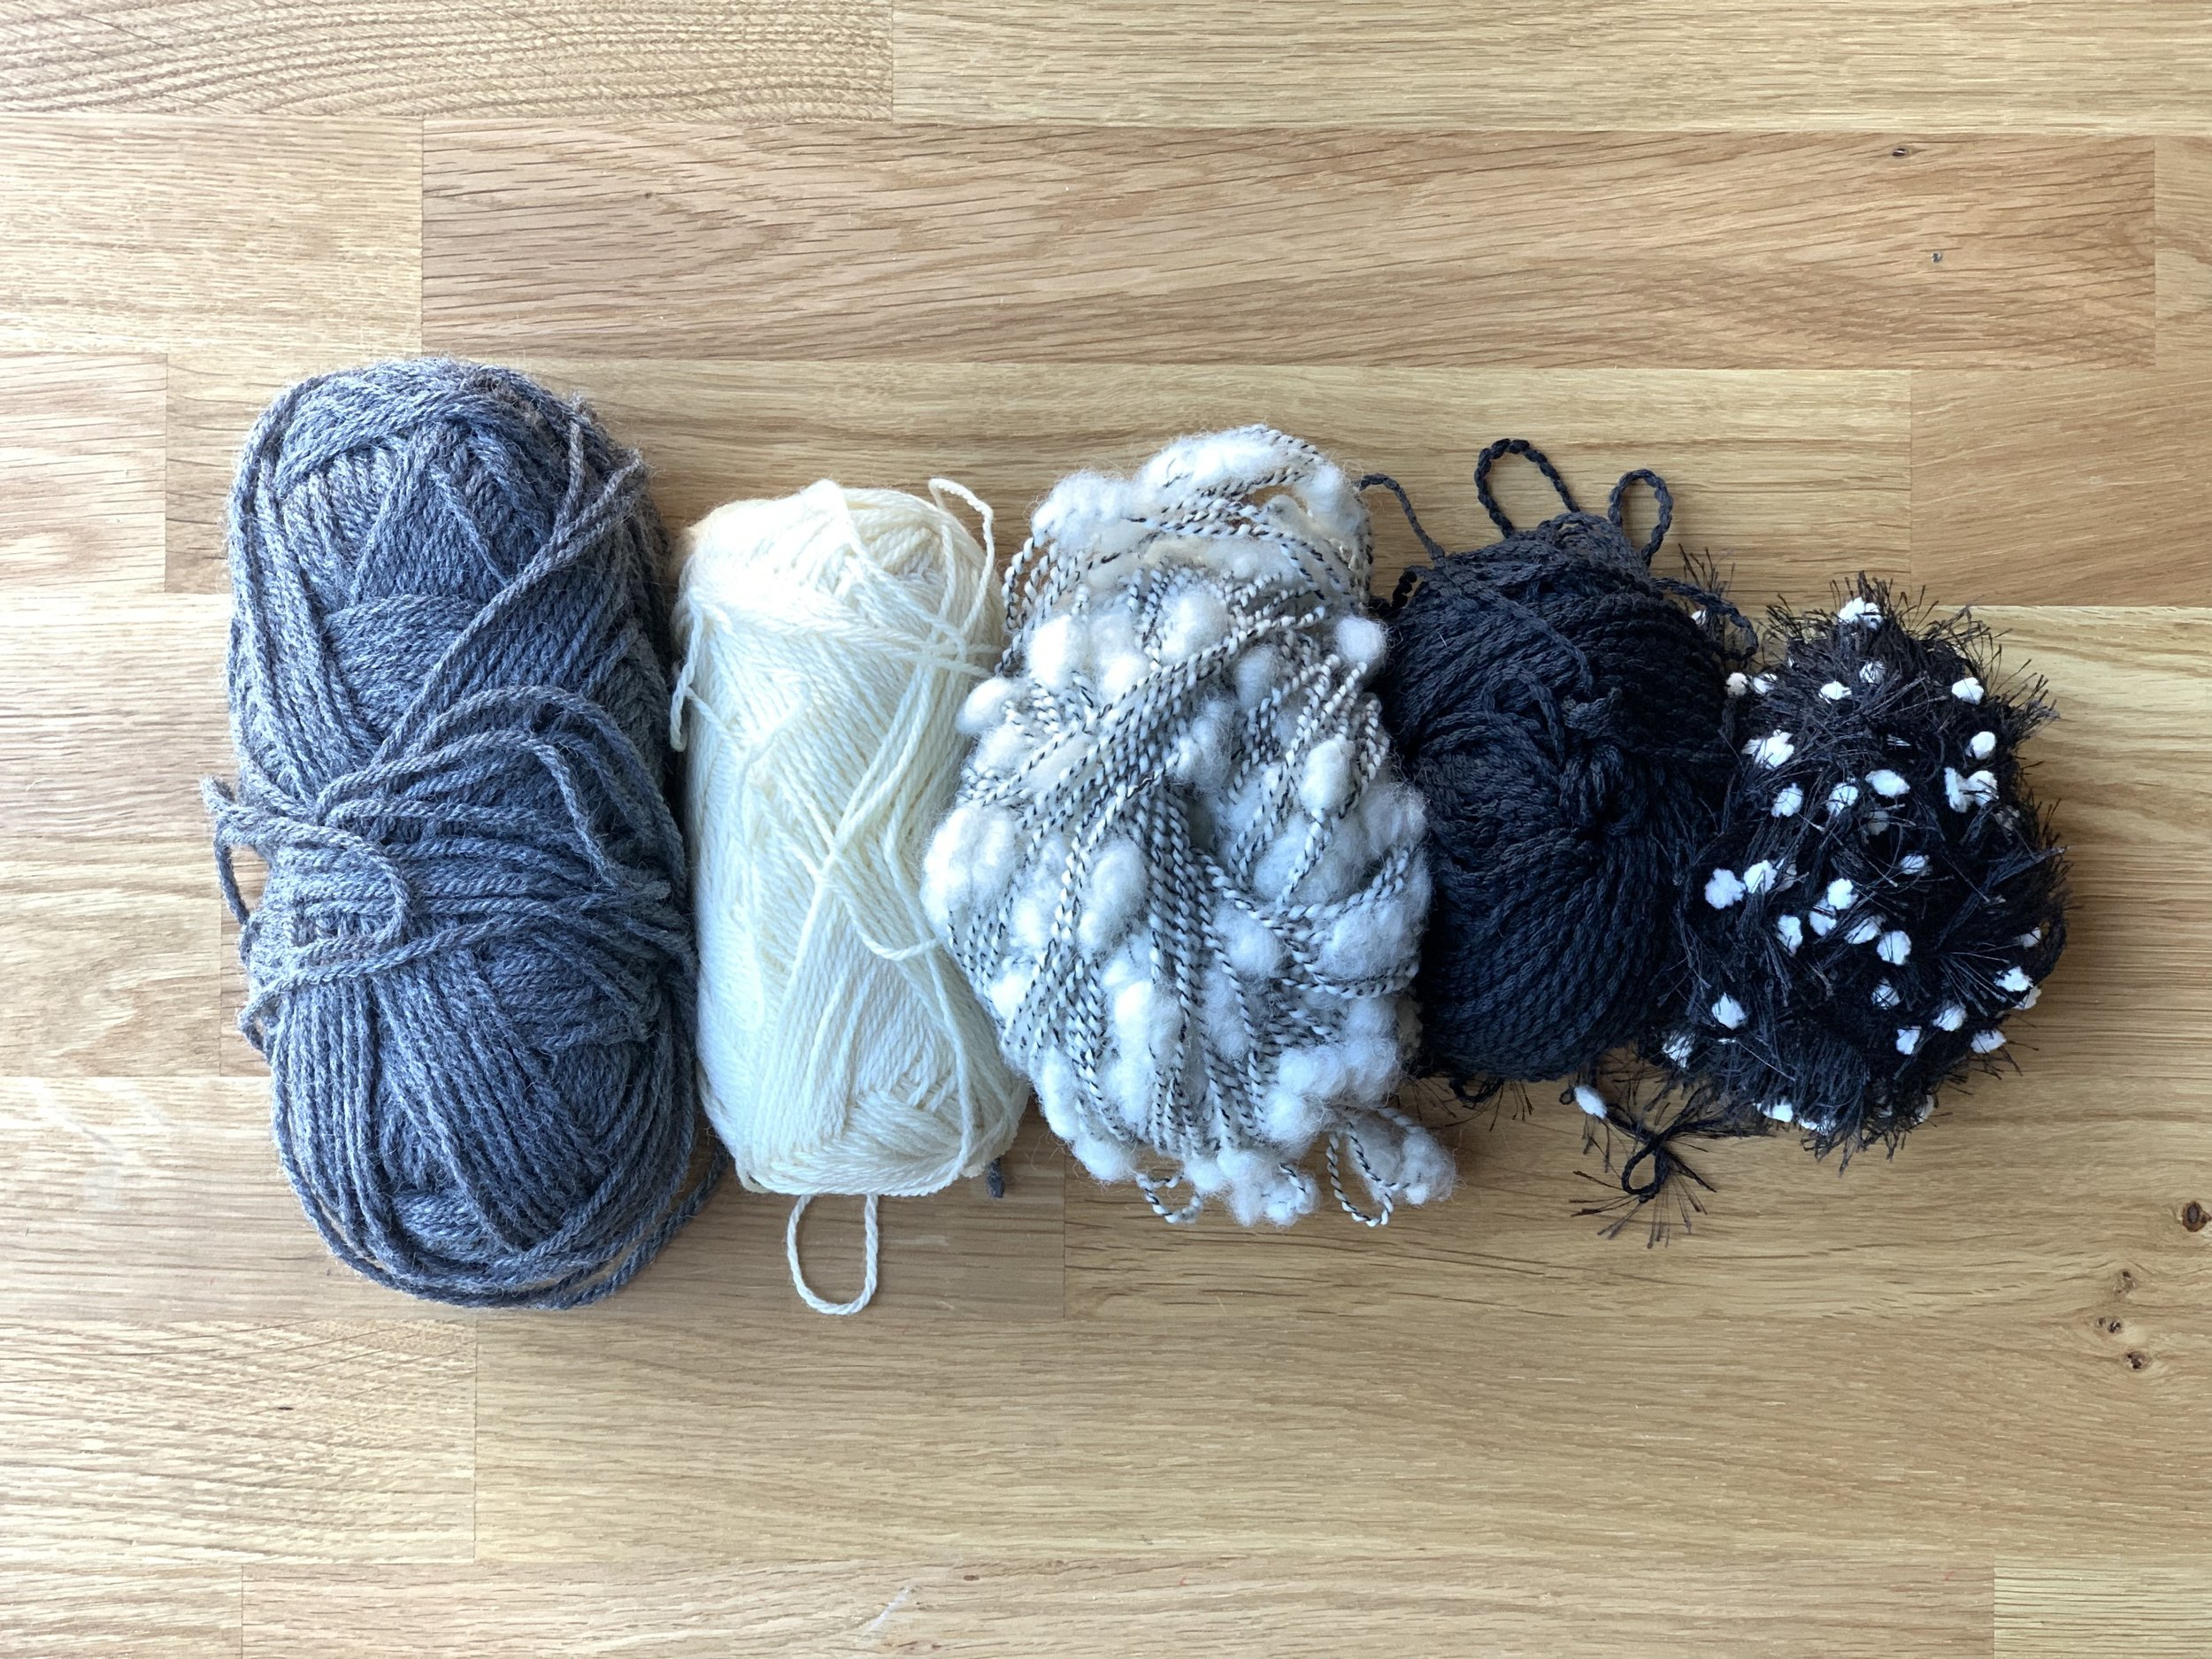 black and white yarn kit x2.jpg